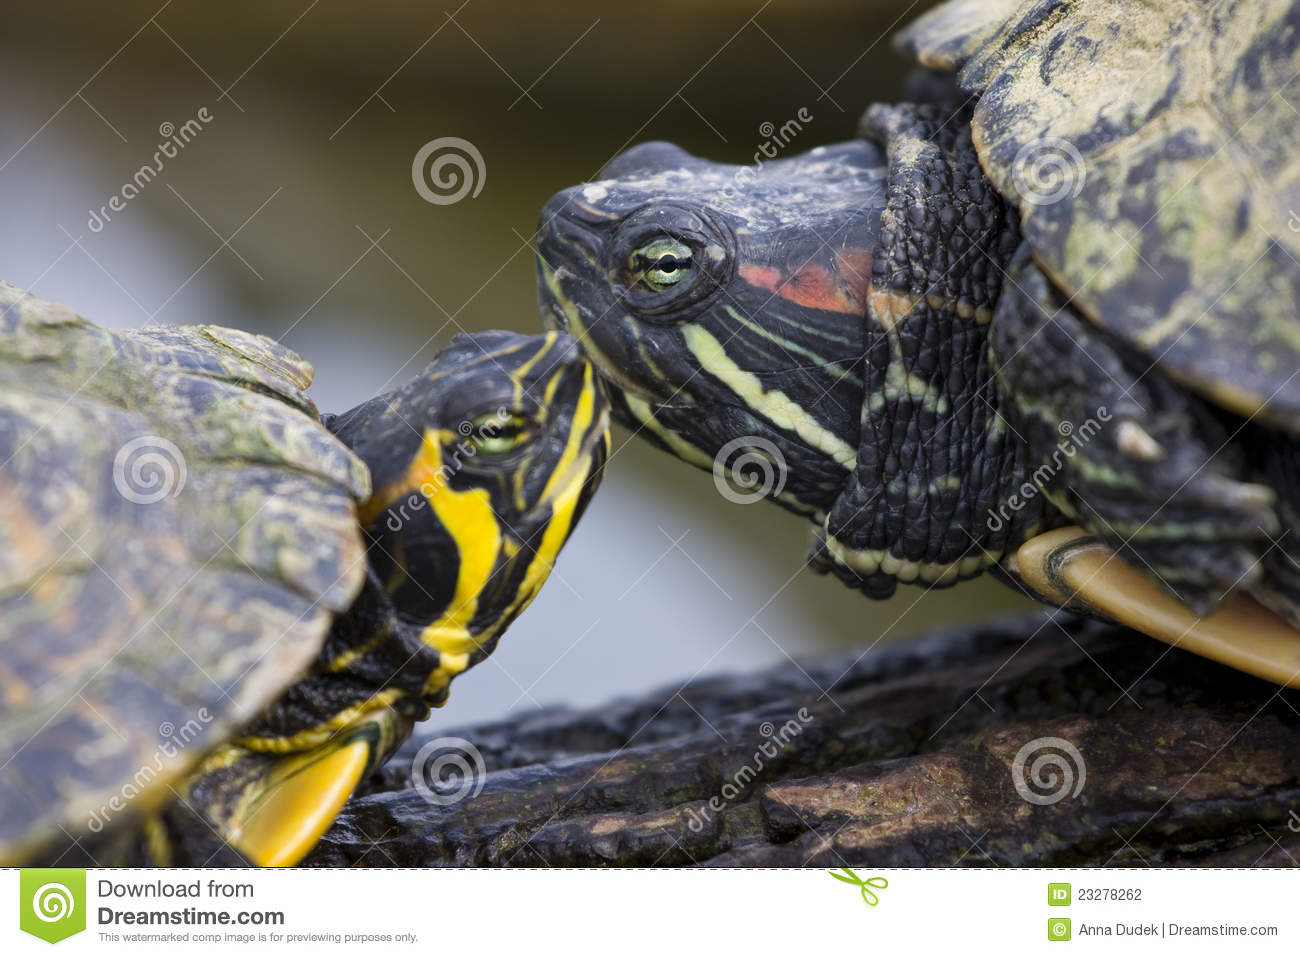 Trachemys scripta elegans red eared sliders stock photo for Trachemys scripta